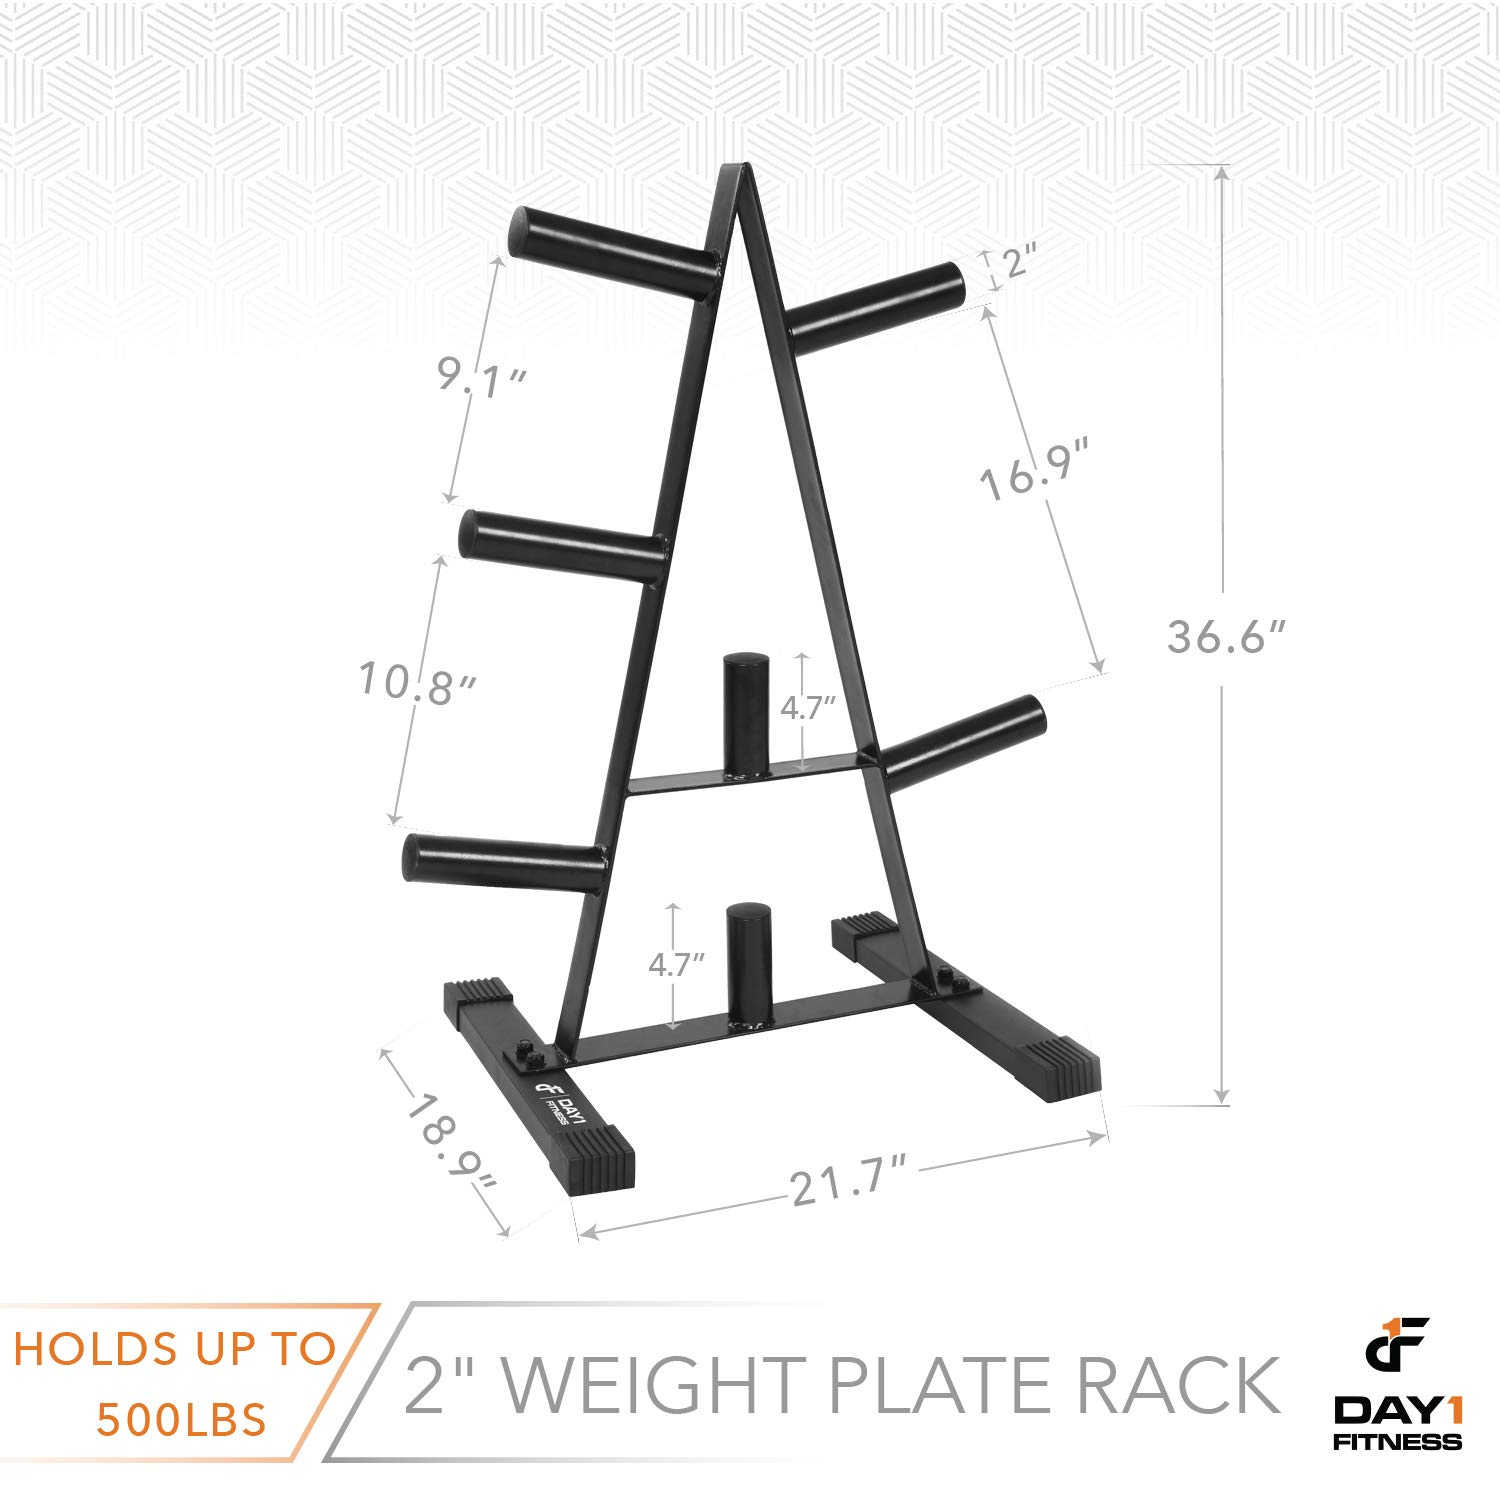 Olympic Weight Plate Rack, Holds up to 500lb of 2'' Weights by D1F - Black Weight Holder Tree with 7 Branches for Stacking and Storing High Capacity Weights- Heavy-Duty, Durable Triangle Plate Racks by Day 1 Fitness (Image #2)